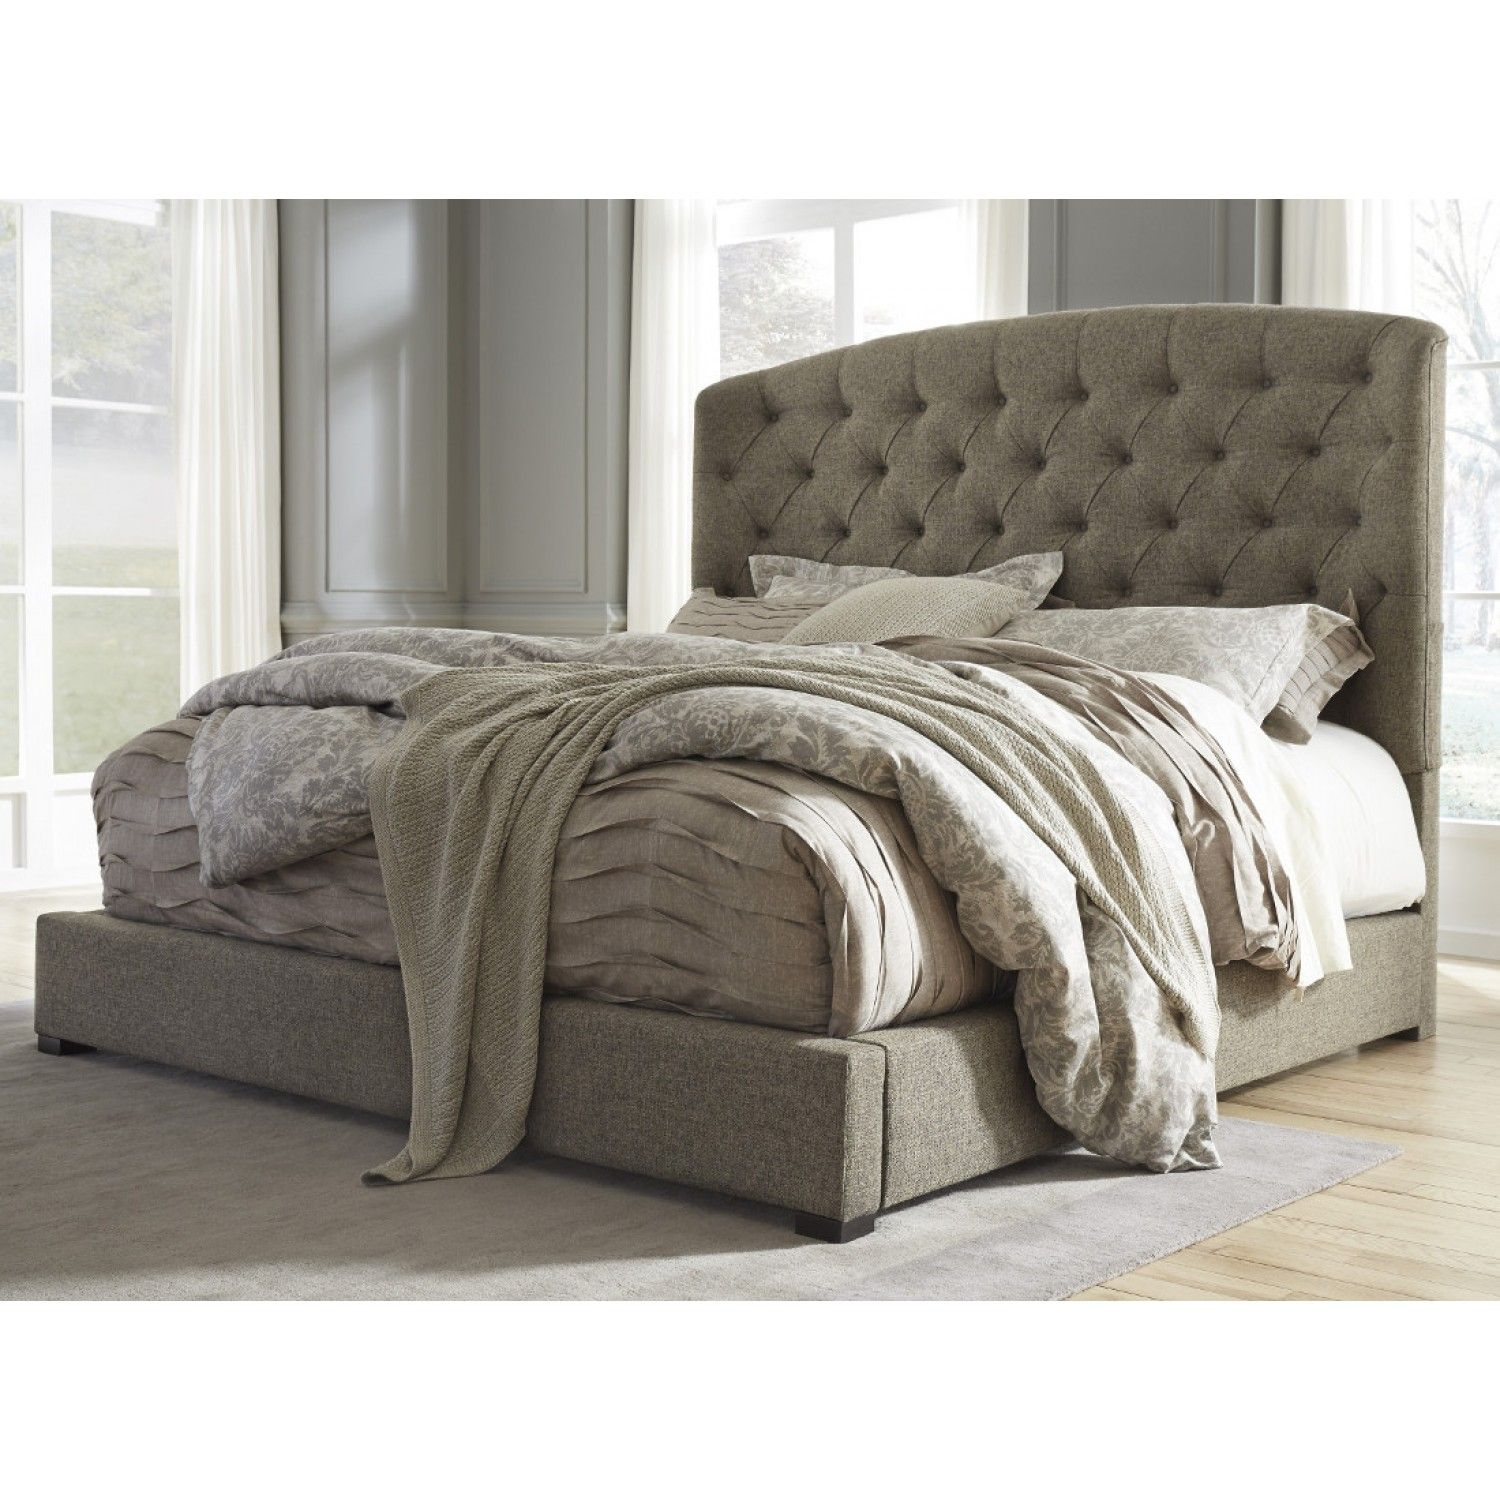 Furniture Clearance Nyc: Ashley Furniture Gerlane King Upholstered Bed In Graphite